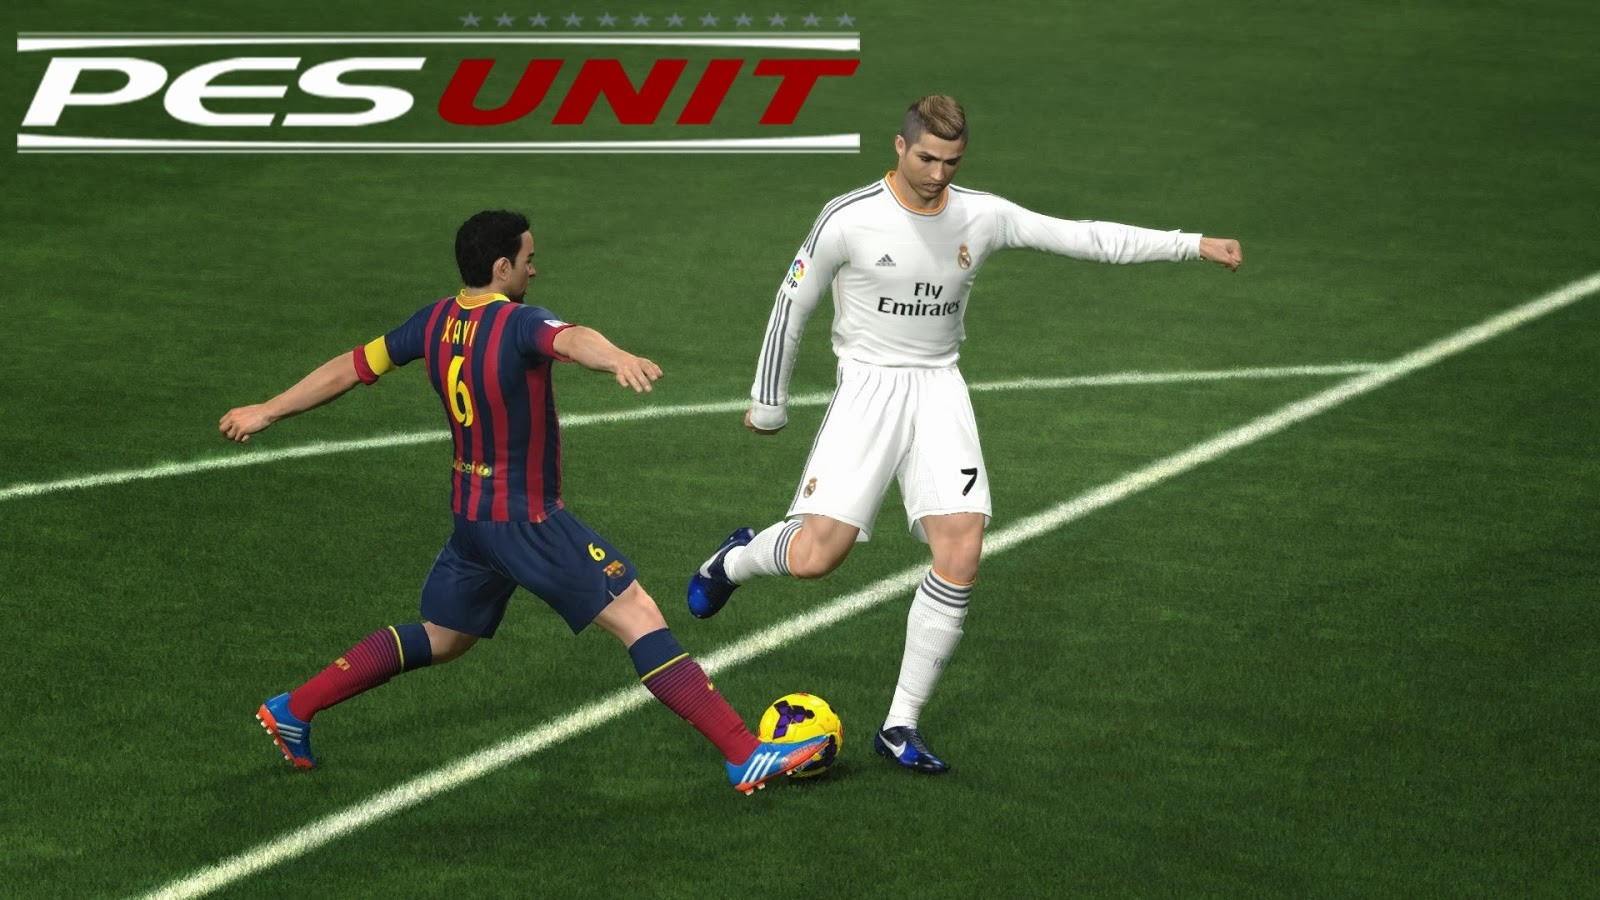 PES 2014 Patches - PESPatchscom PES Patch